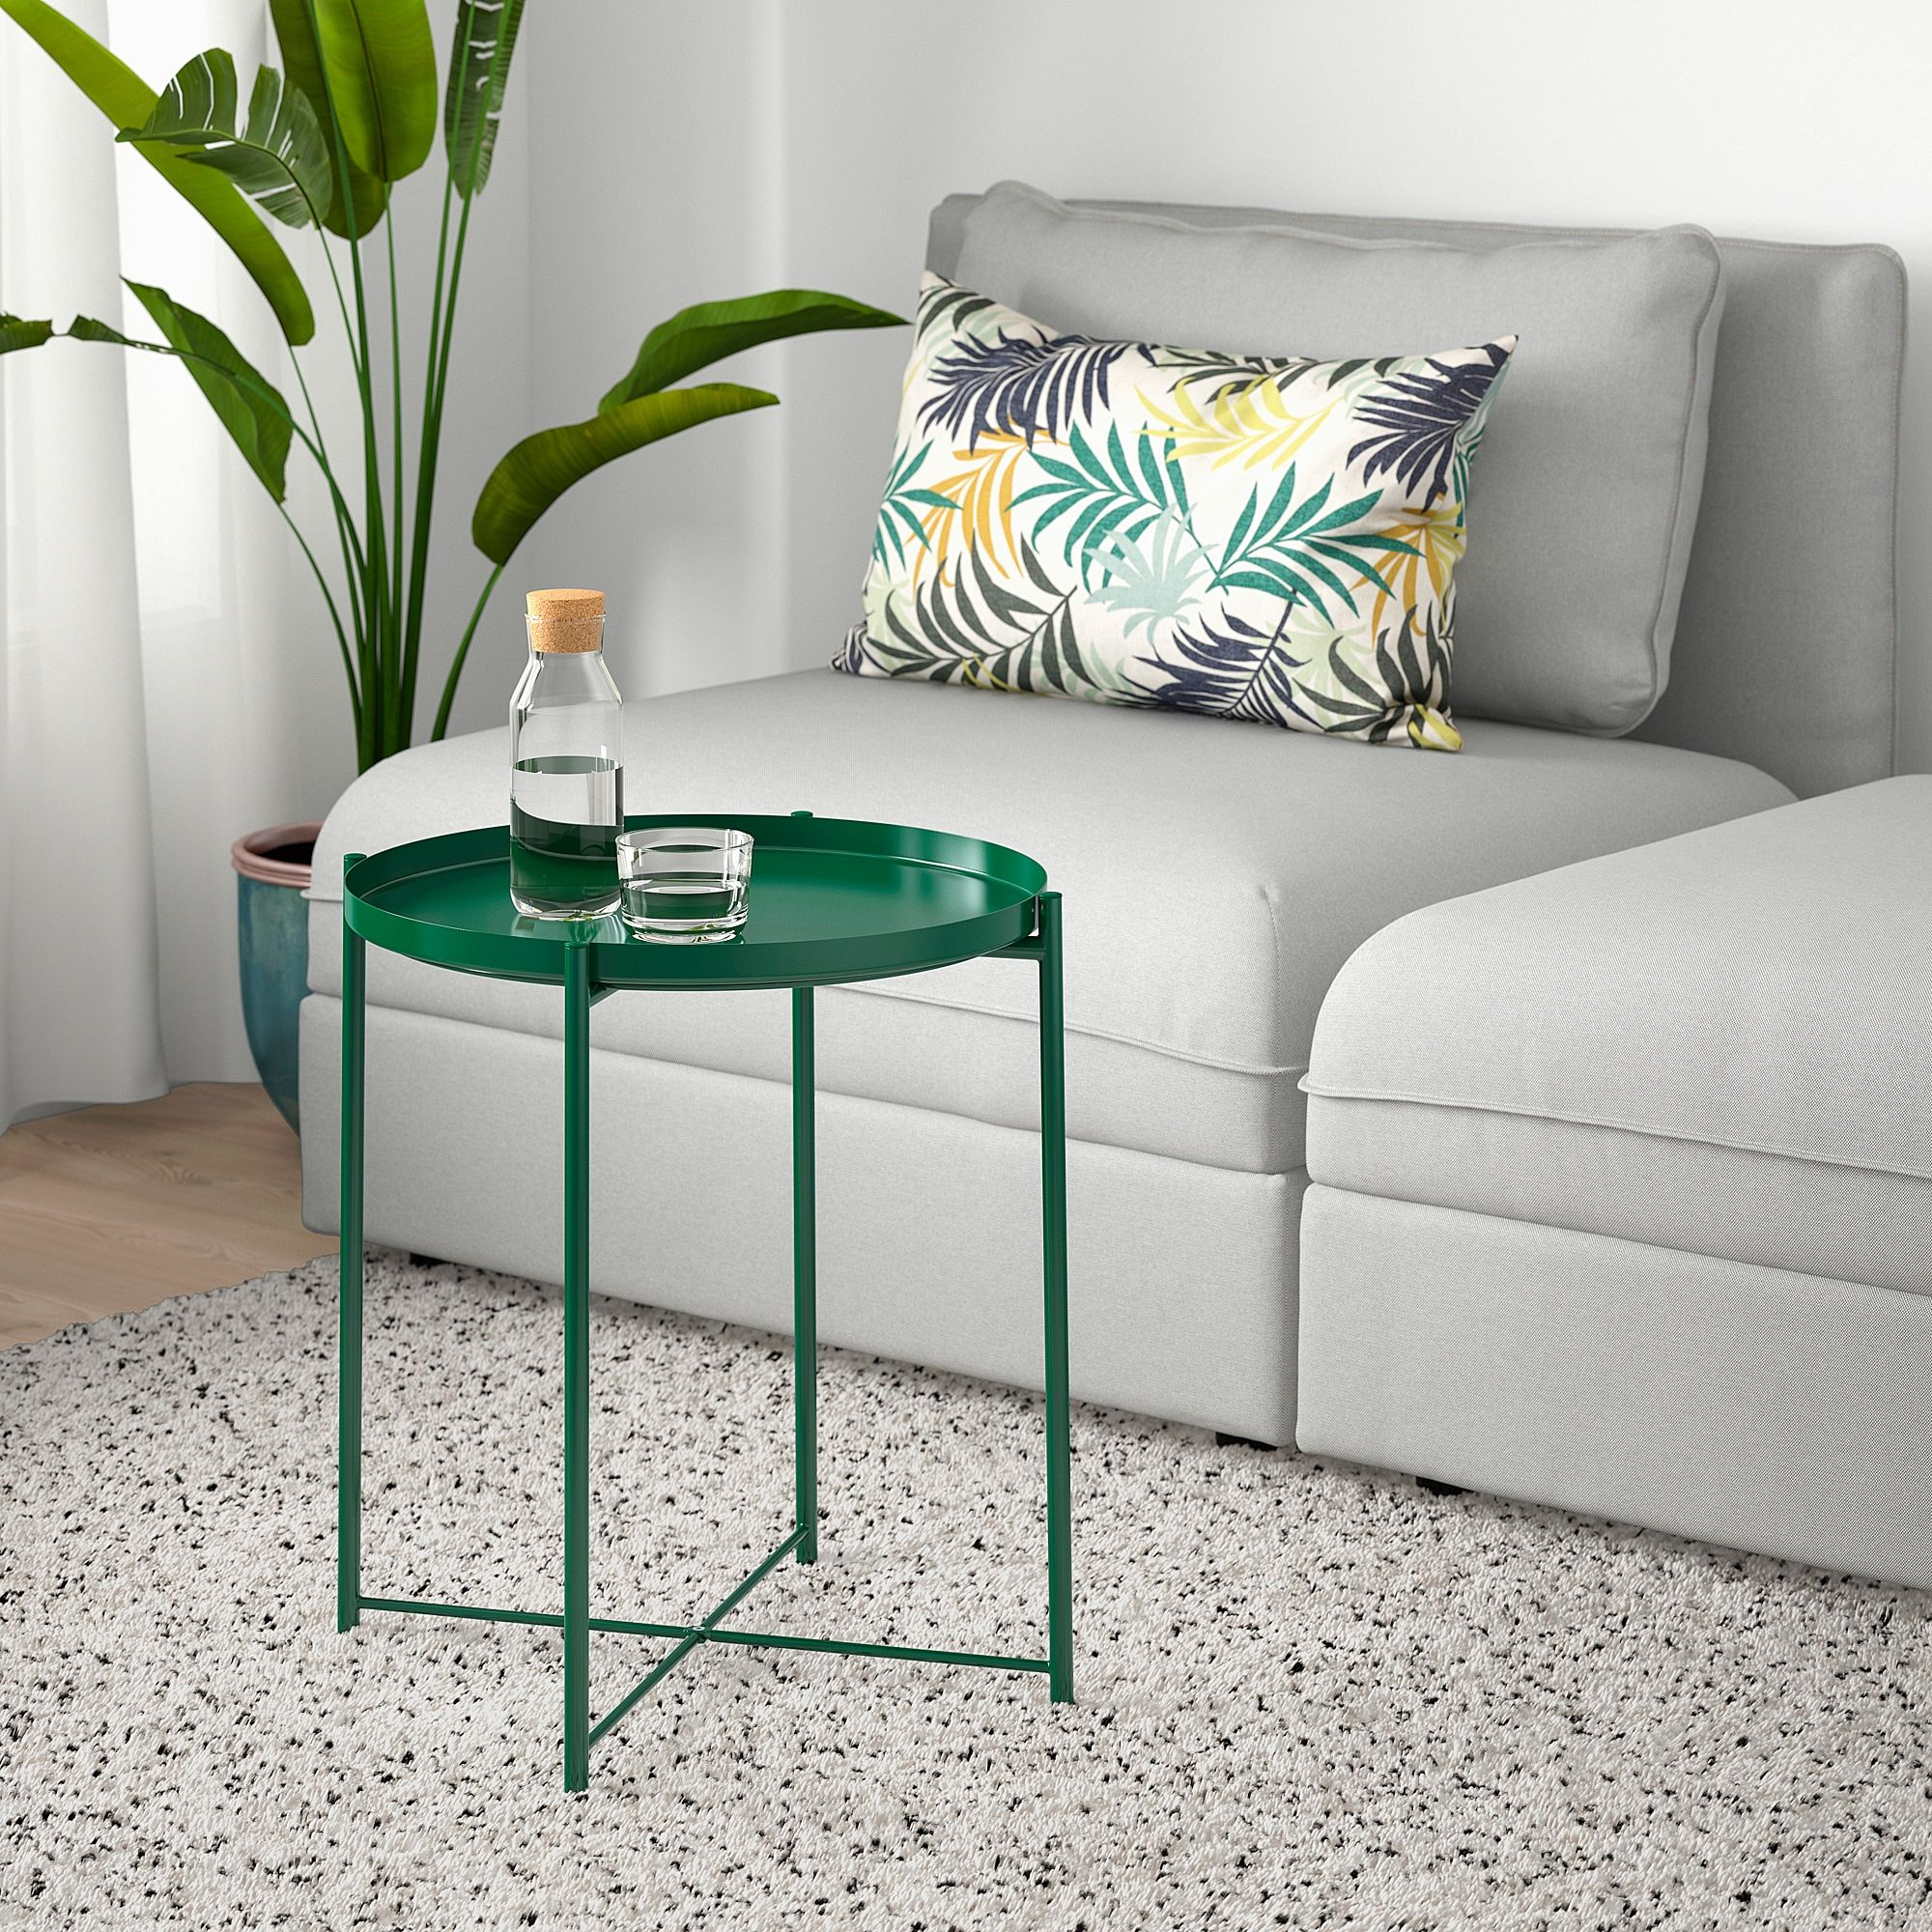 Gladom Tray Table Green 17 1 2x20 5 8 Ikea In 2021 Tray Table Coffee Table Living Room Table [ 2000 x 2000 Pixel ]